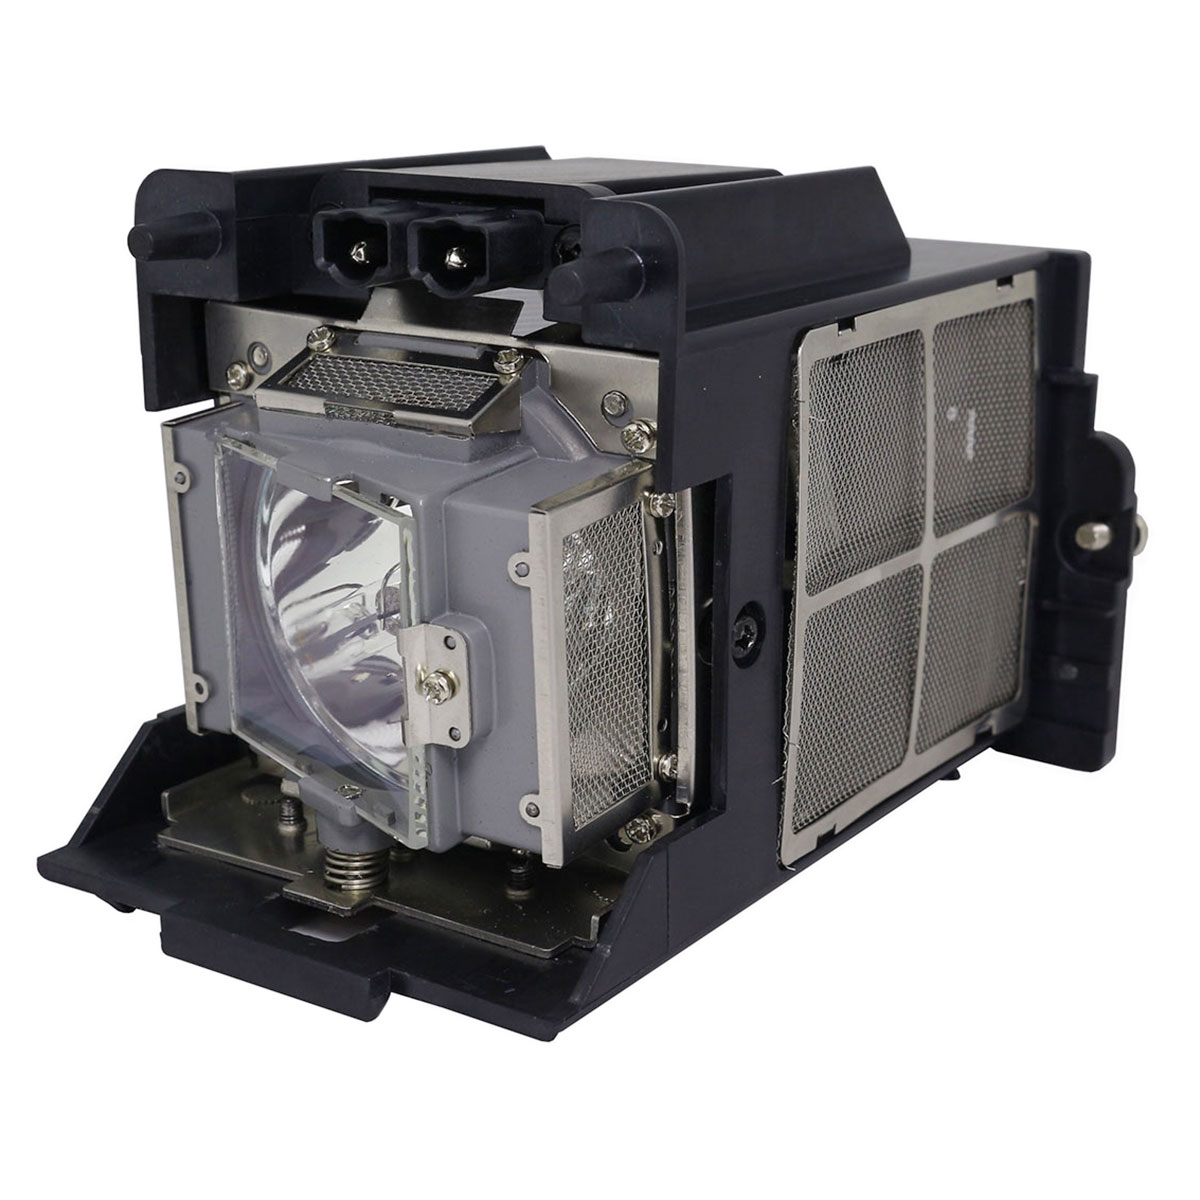 Barco RLM-W8 Projector Lamp  New P-VIP Bulb at a Low Price - Projectorquest